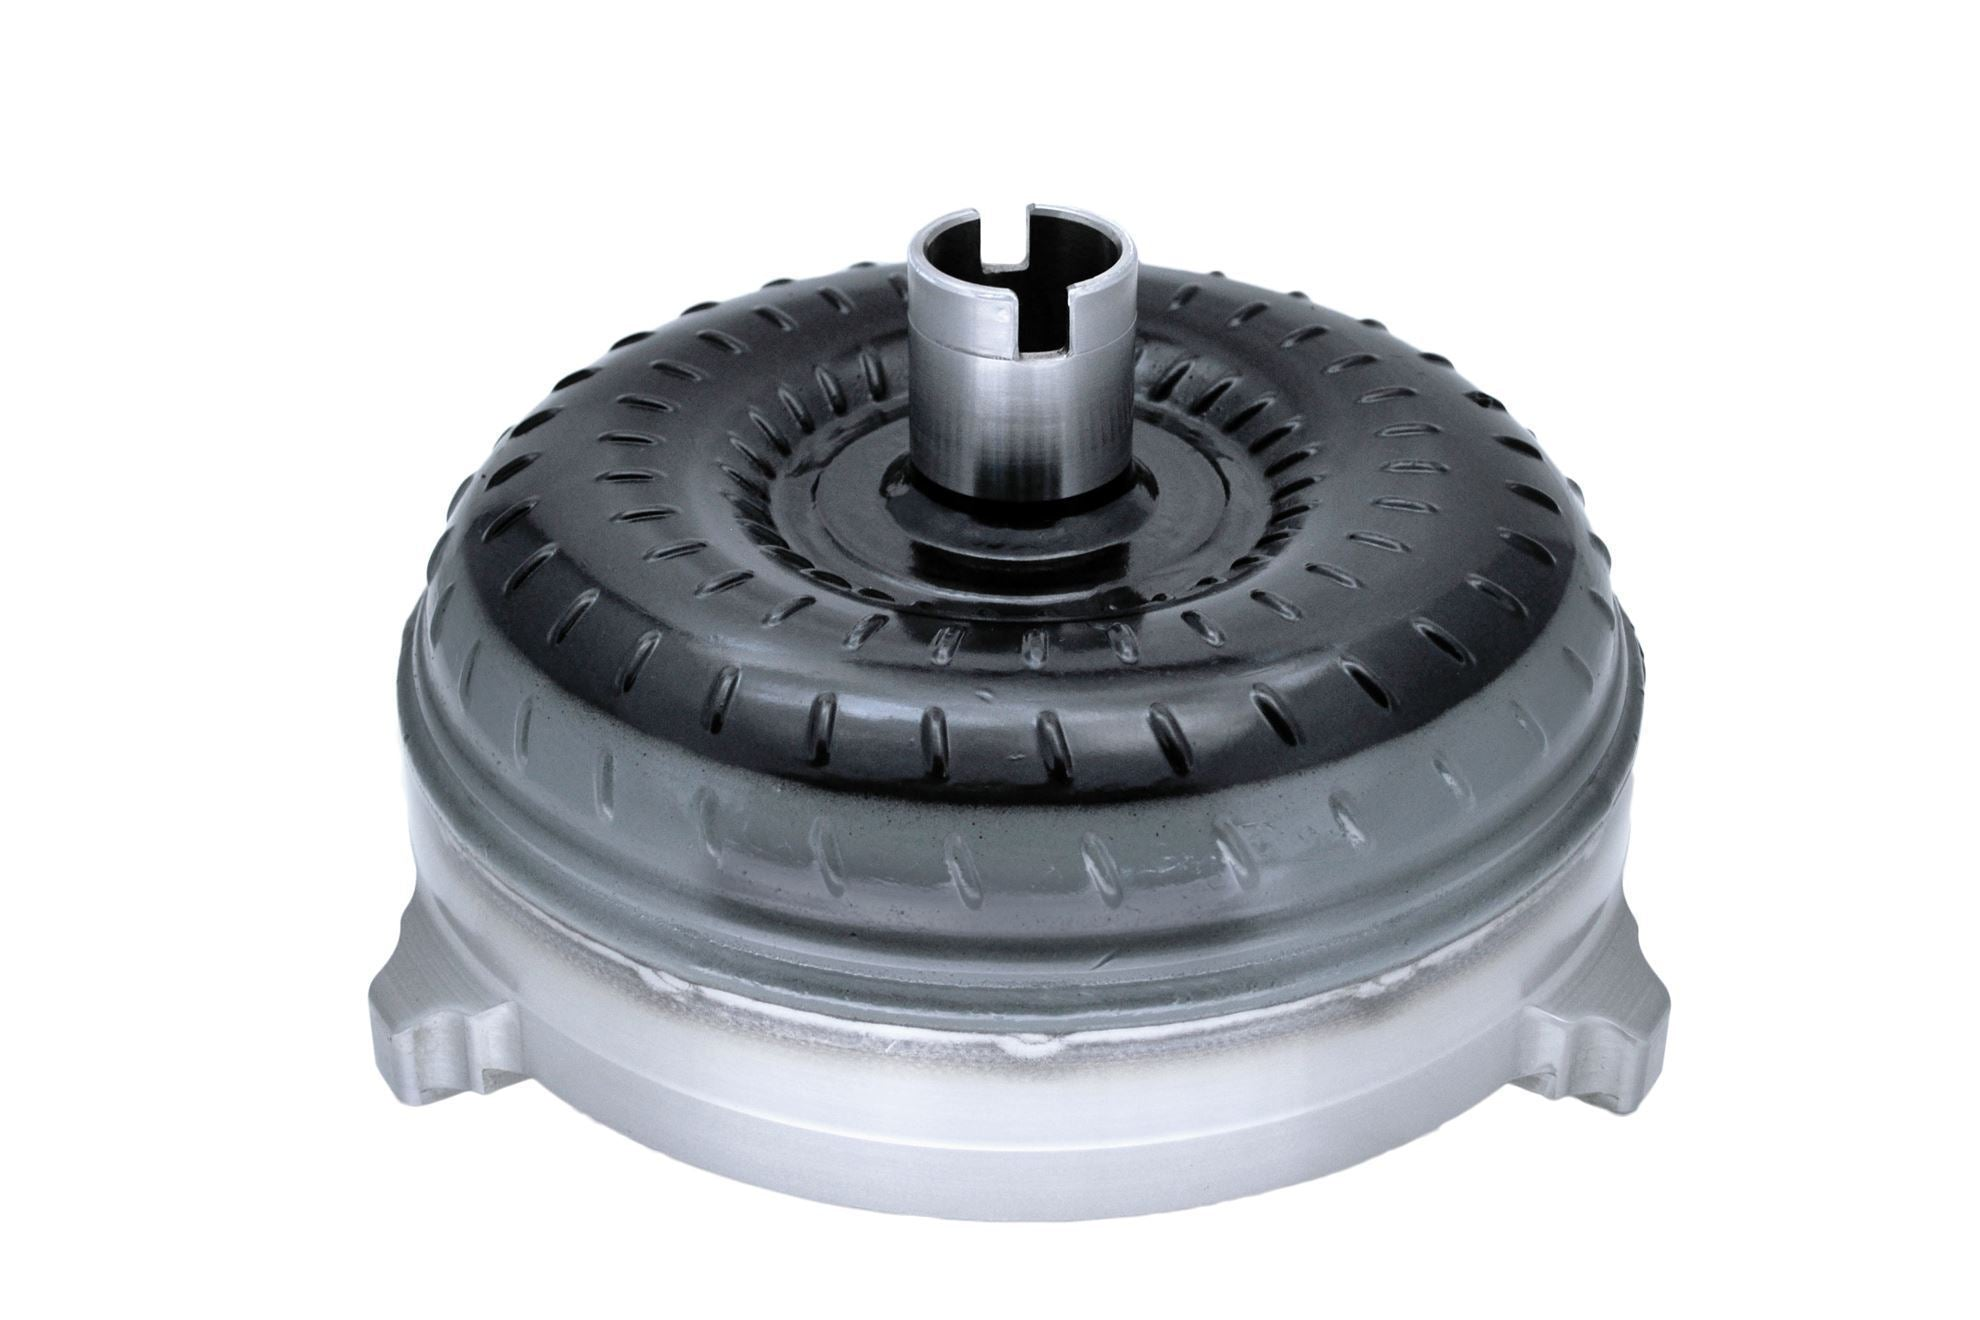 Circle D 245mm Billet Pro Series LS Torque Converter - 4L60e